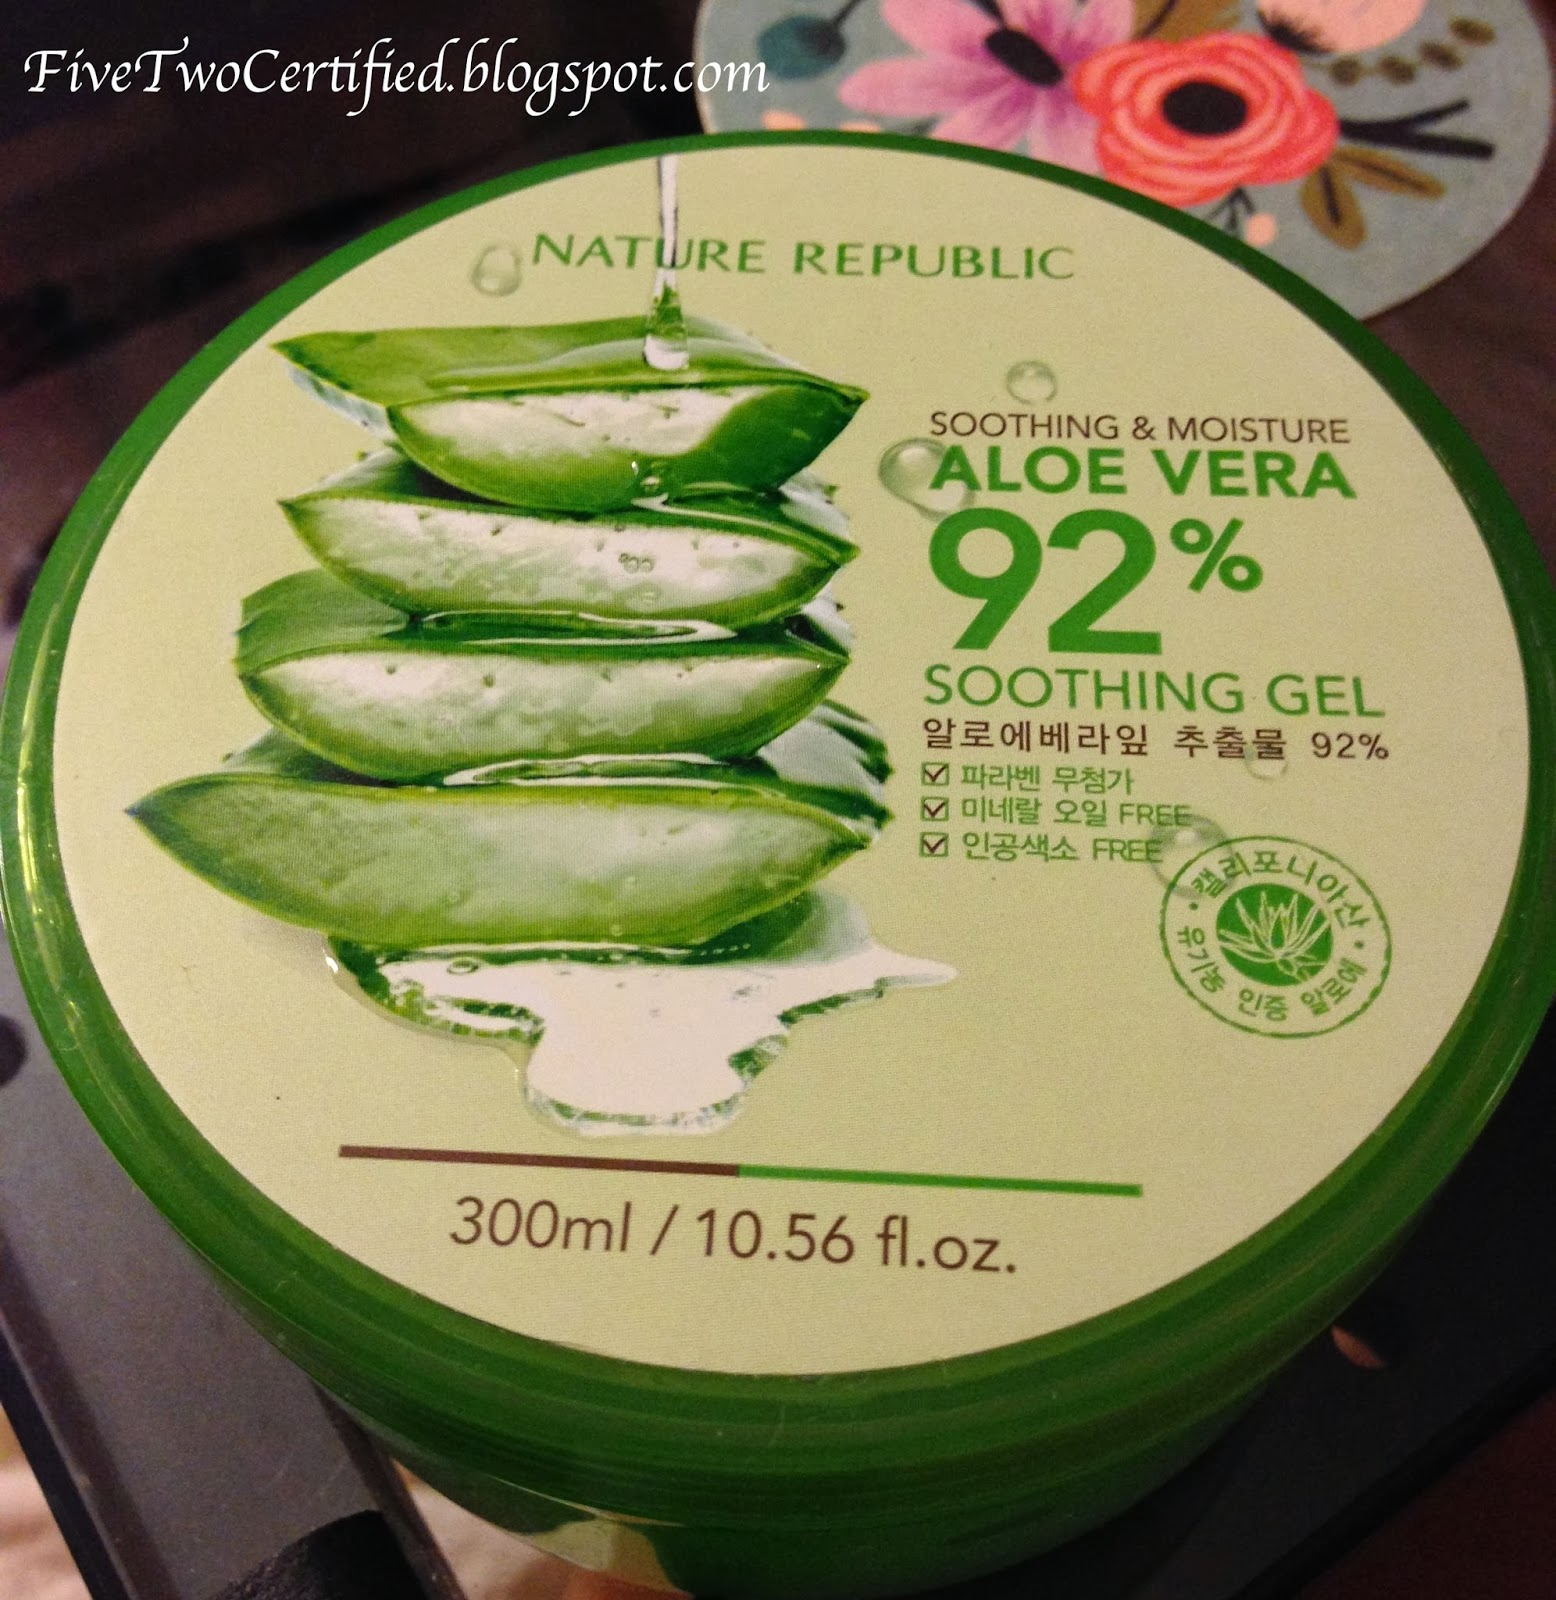 Nature republic soothing and moisture aloe vera 92 soothing gel 300ml - Nature Republic Aloe Vera 92 Soothing Gel Review